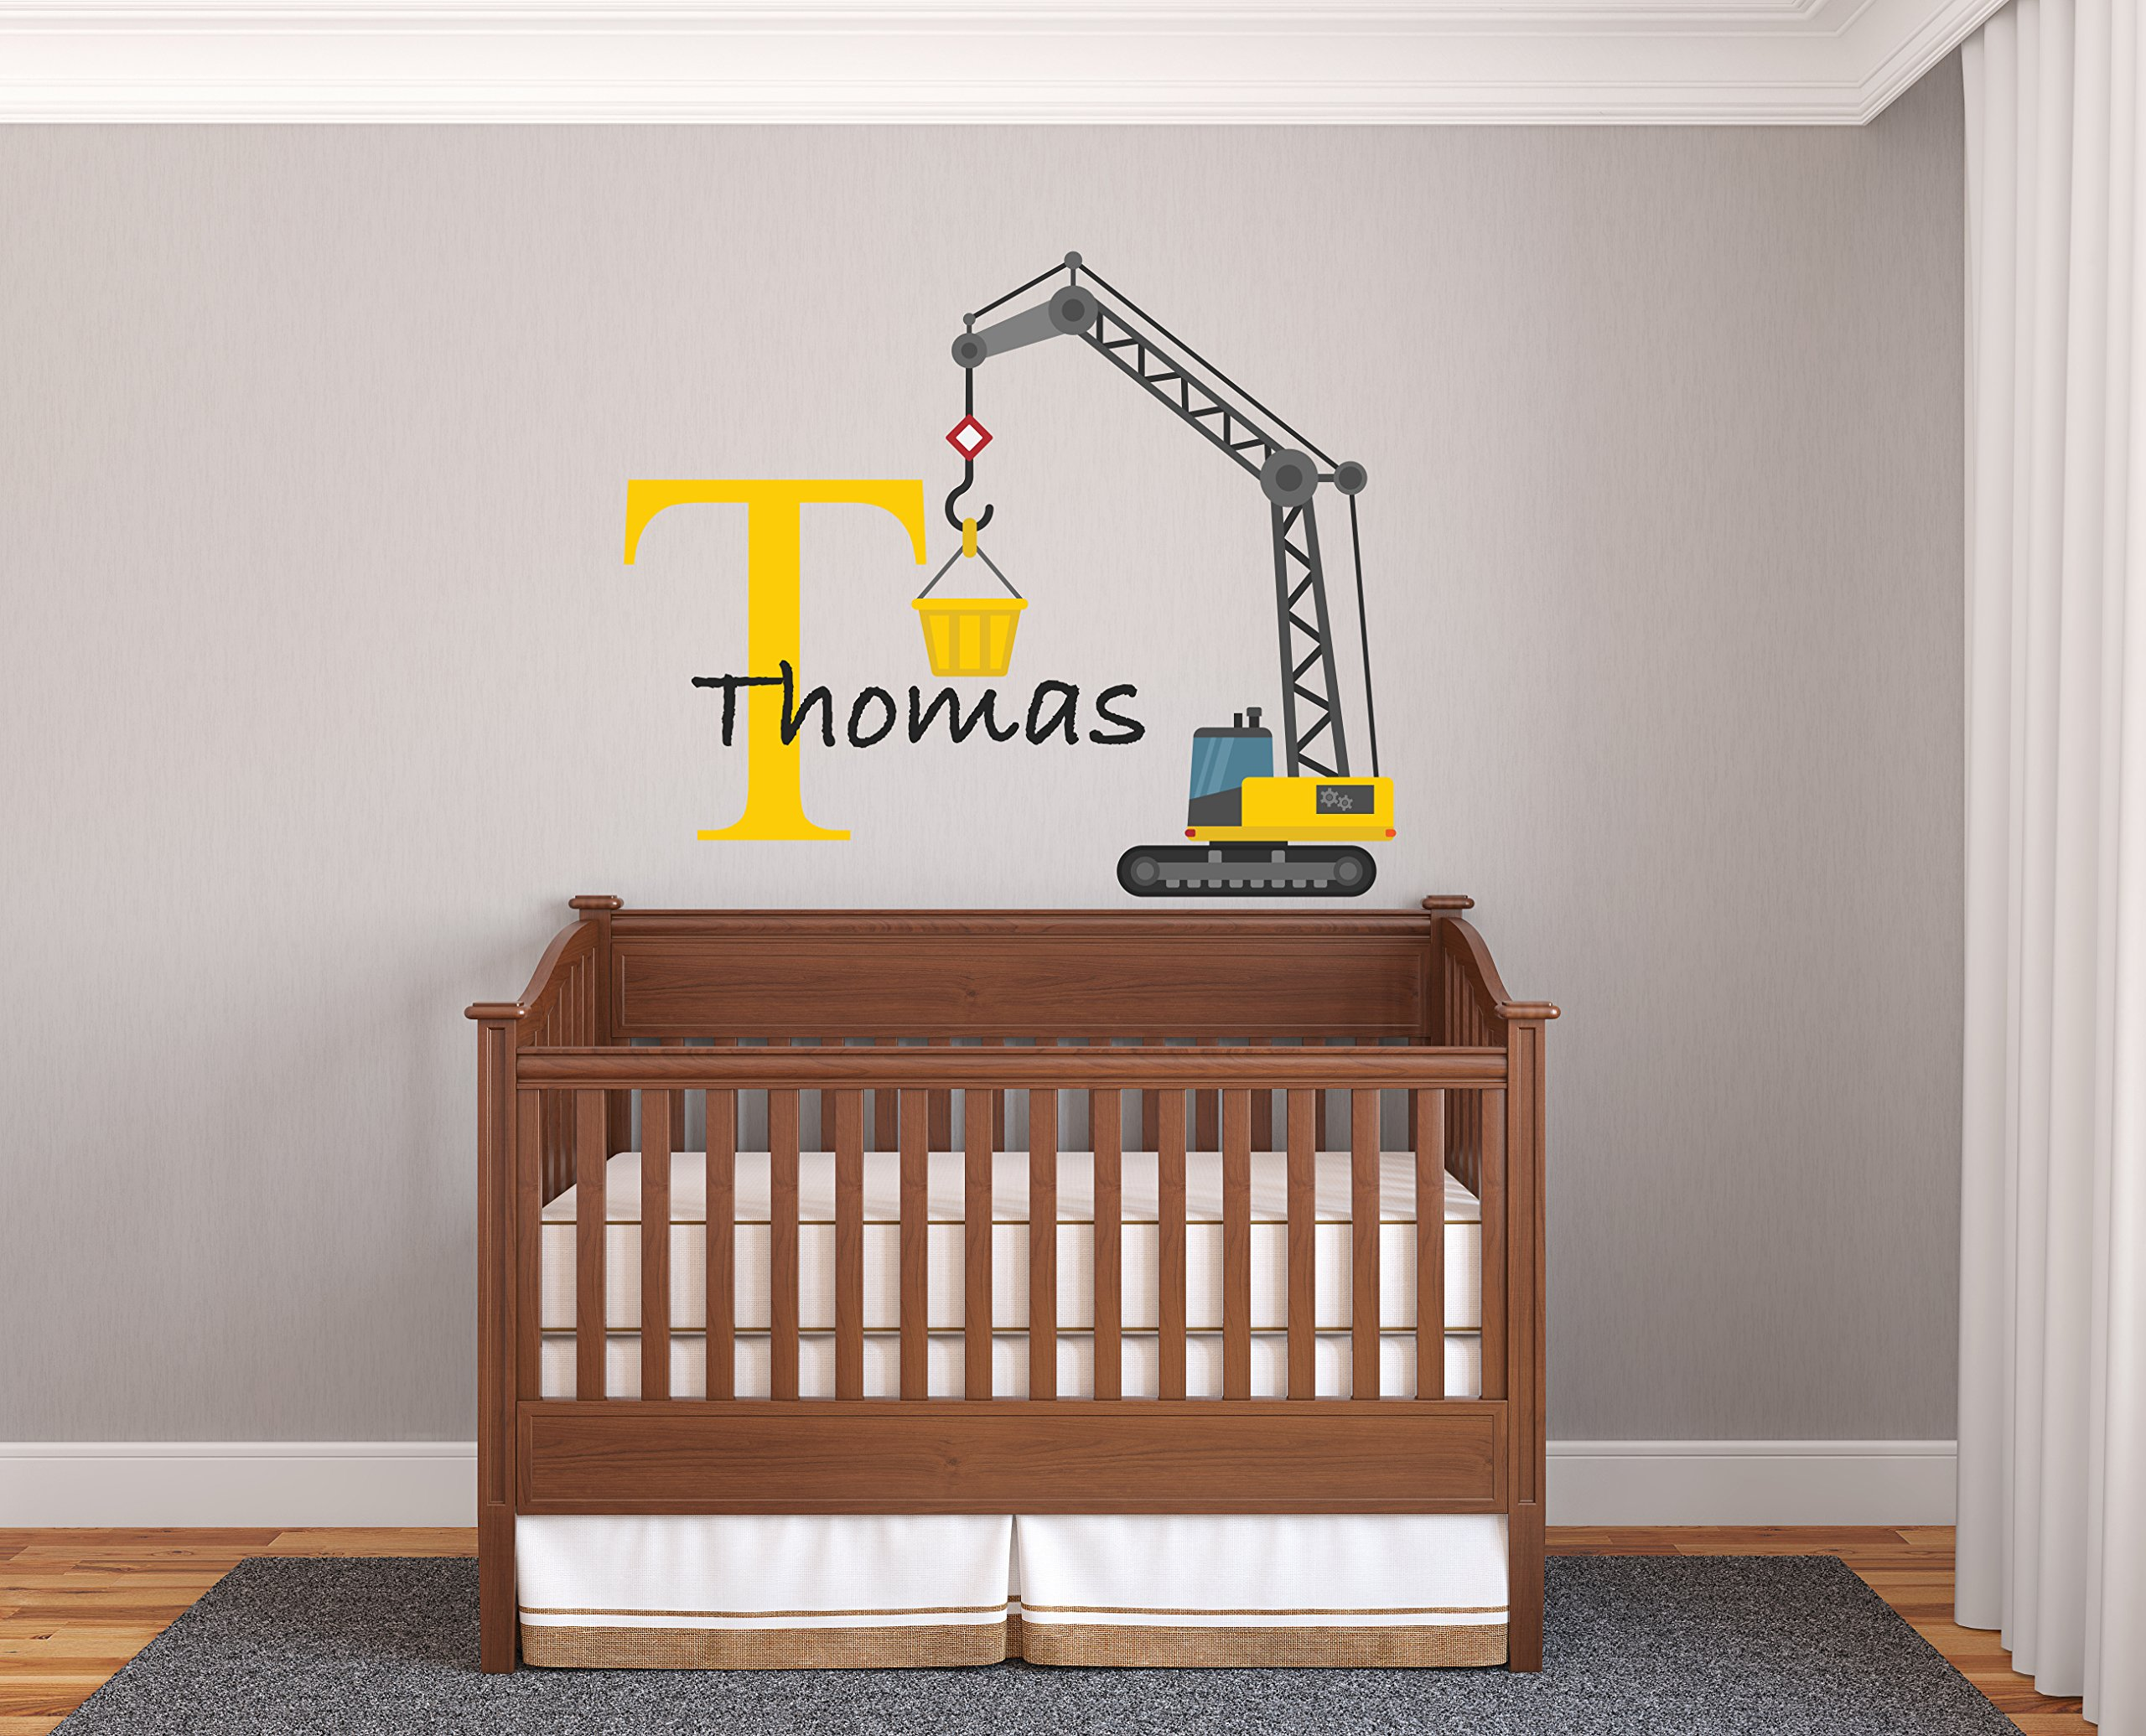 Custom Name & Initial Construction Crane - Prime Series - Baby Boy - Nursery Wall Decal For Baby Room Decorations - Mural Wall Decal Sticker For Home Children's Bedroom (Wide 22''x18'' Height)